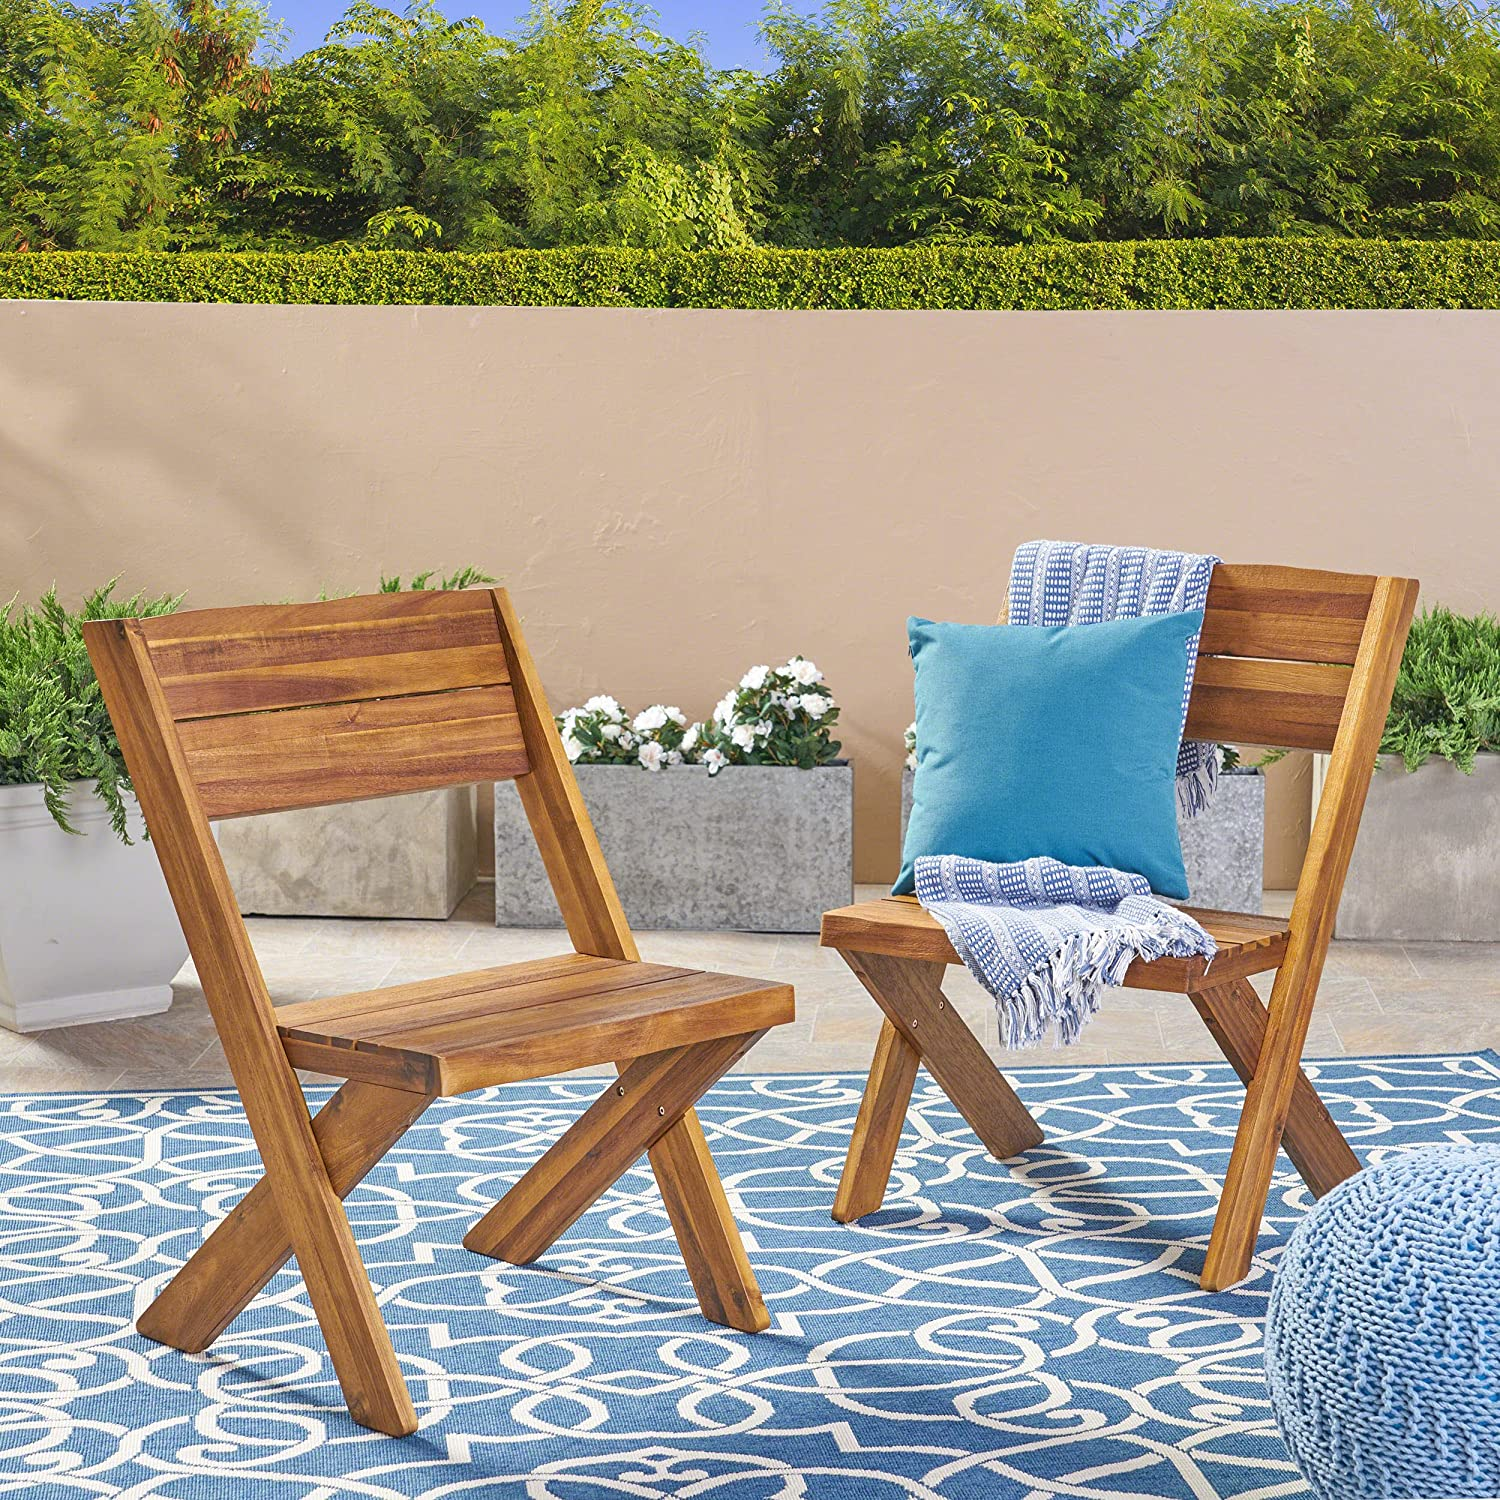 Christopher Knight Home 304408 Irene Outdoor Acacia Wood Chairs Set of 2 , Teak, Sandblast Finish